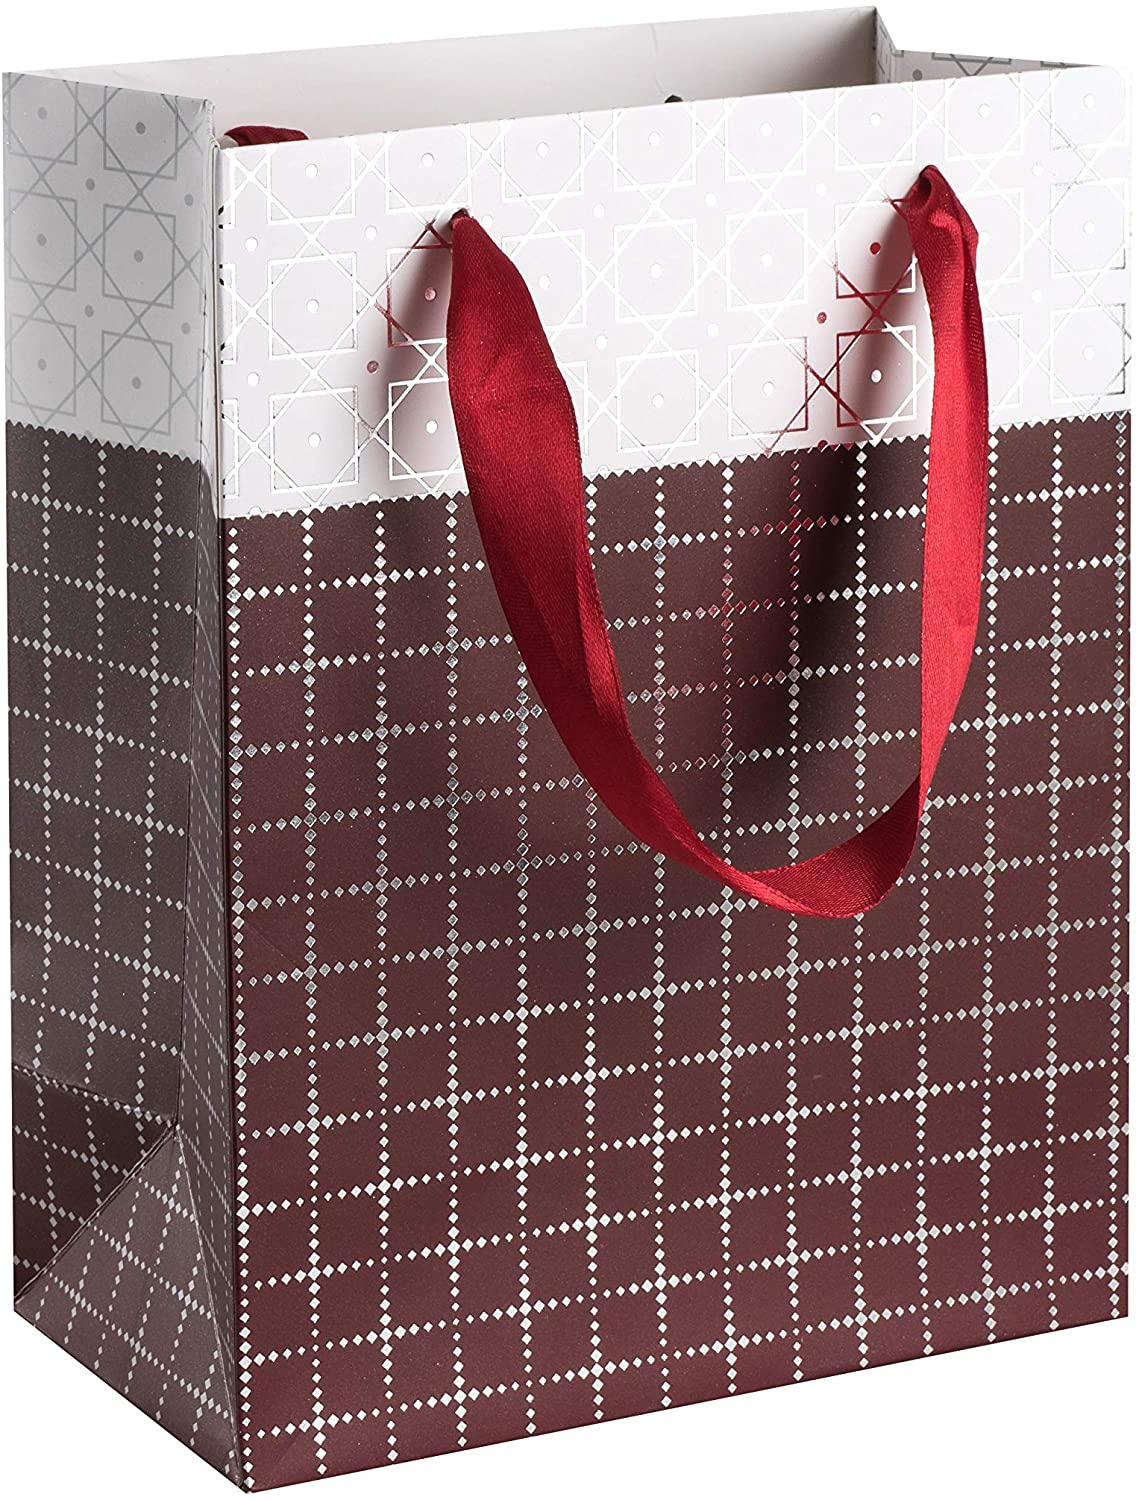 "Small Box Design Foil Stamped Gift Bags Set (12 Pack)- 9""x 7""x 4"" Unique Design with Durable Ribbon Handles, Beautiful Present Bags Best for Birthday, Wedding and Party Favors (Maroon)"